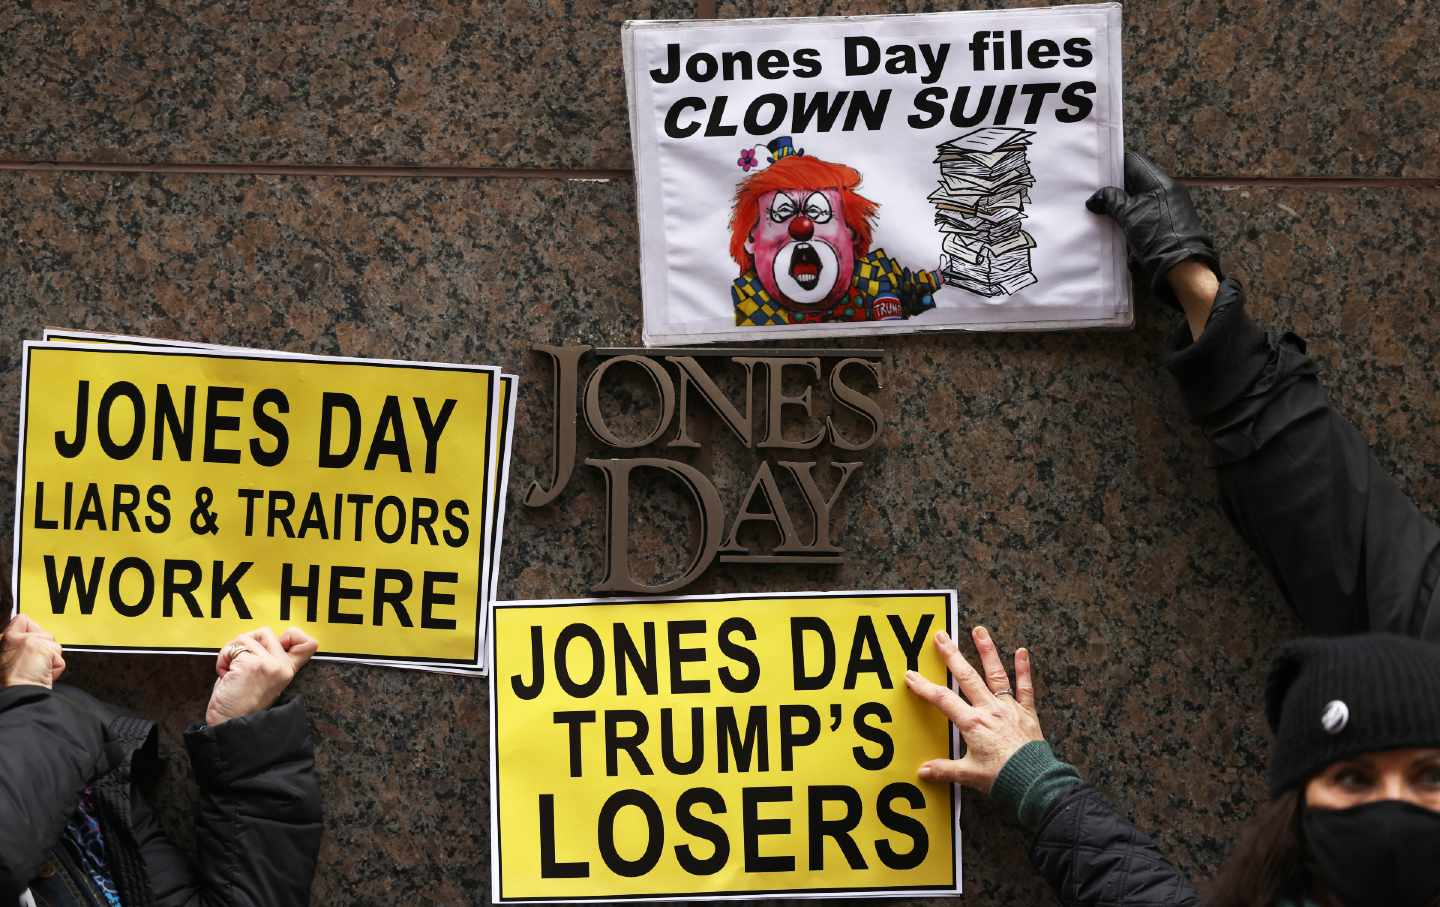 Protest signs in front of Jones Day office